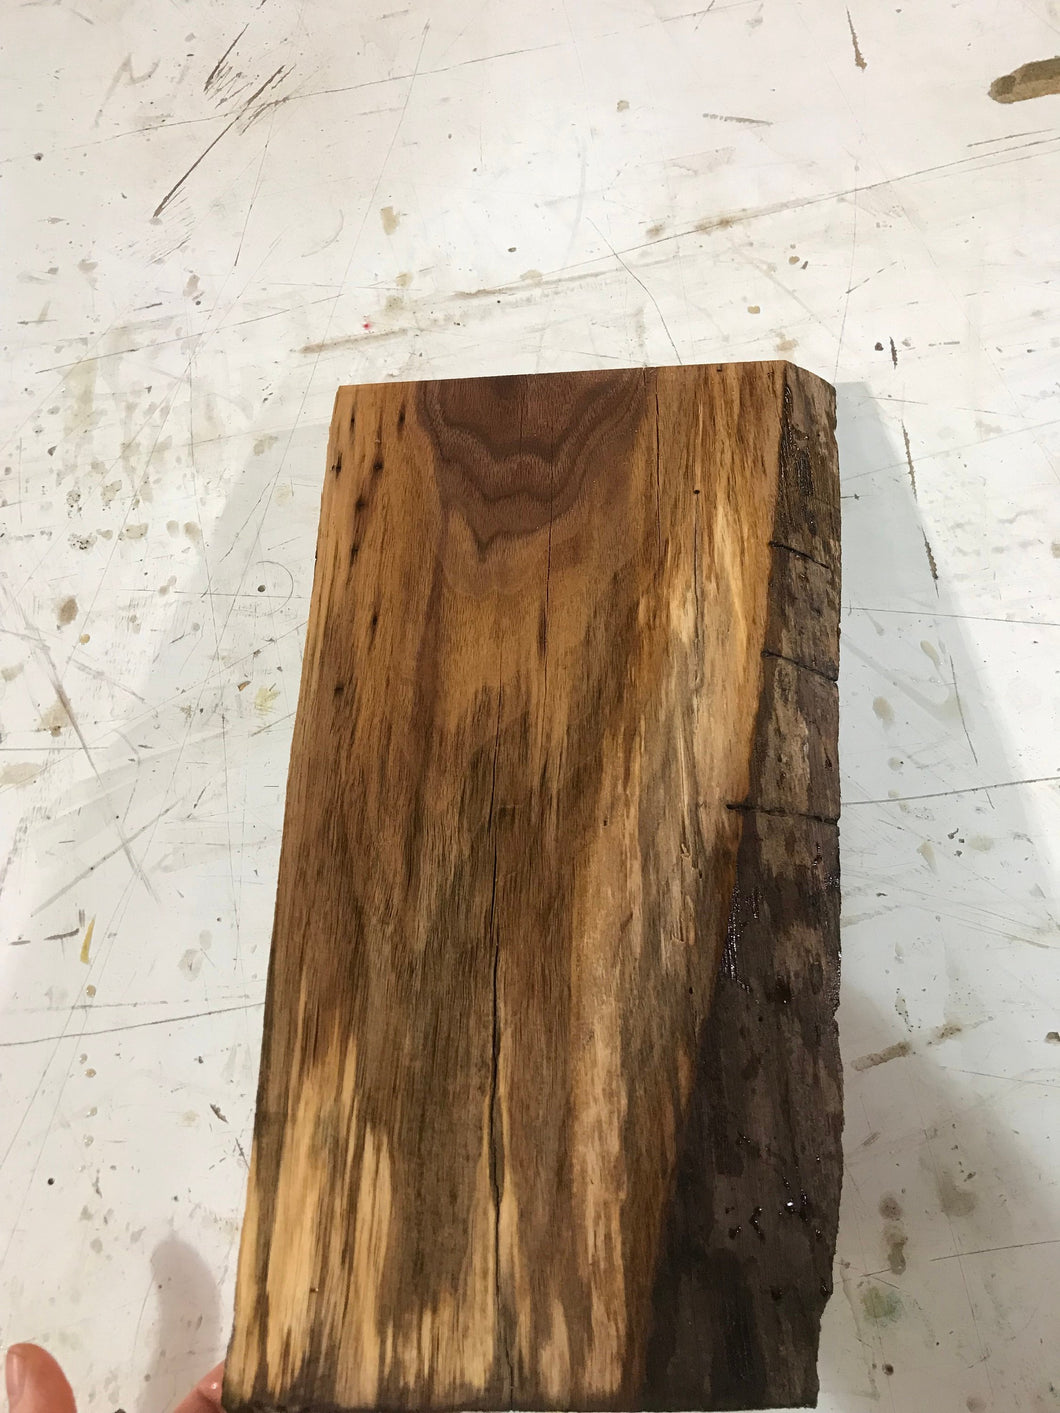 Live edge walnut